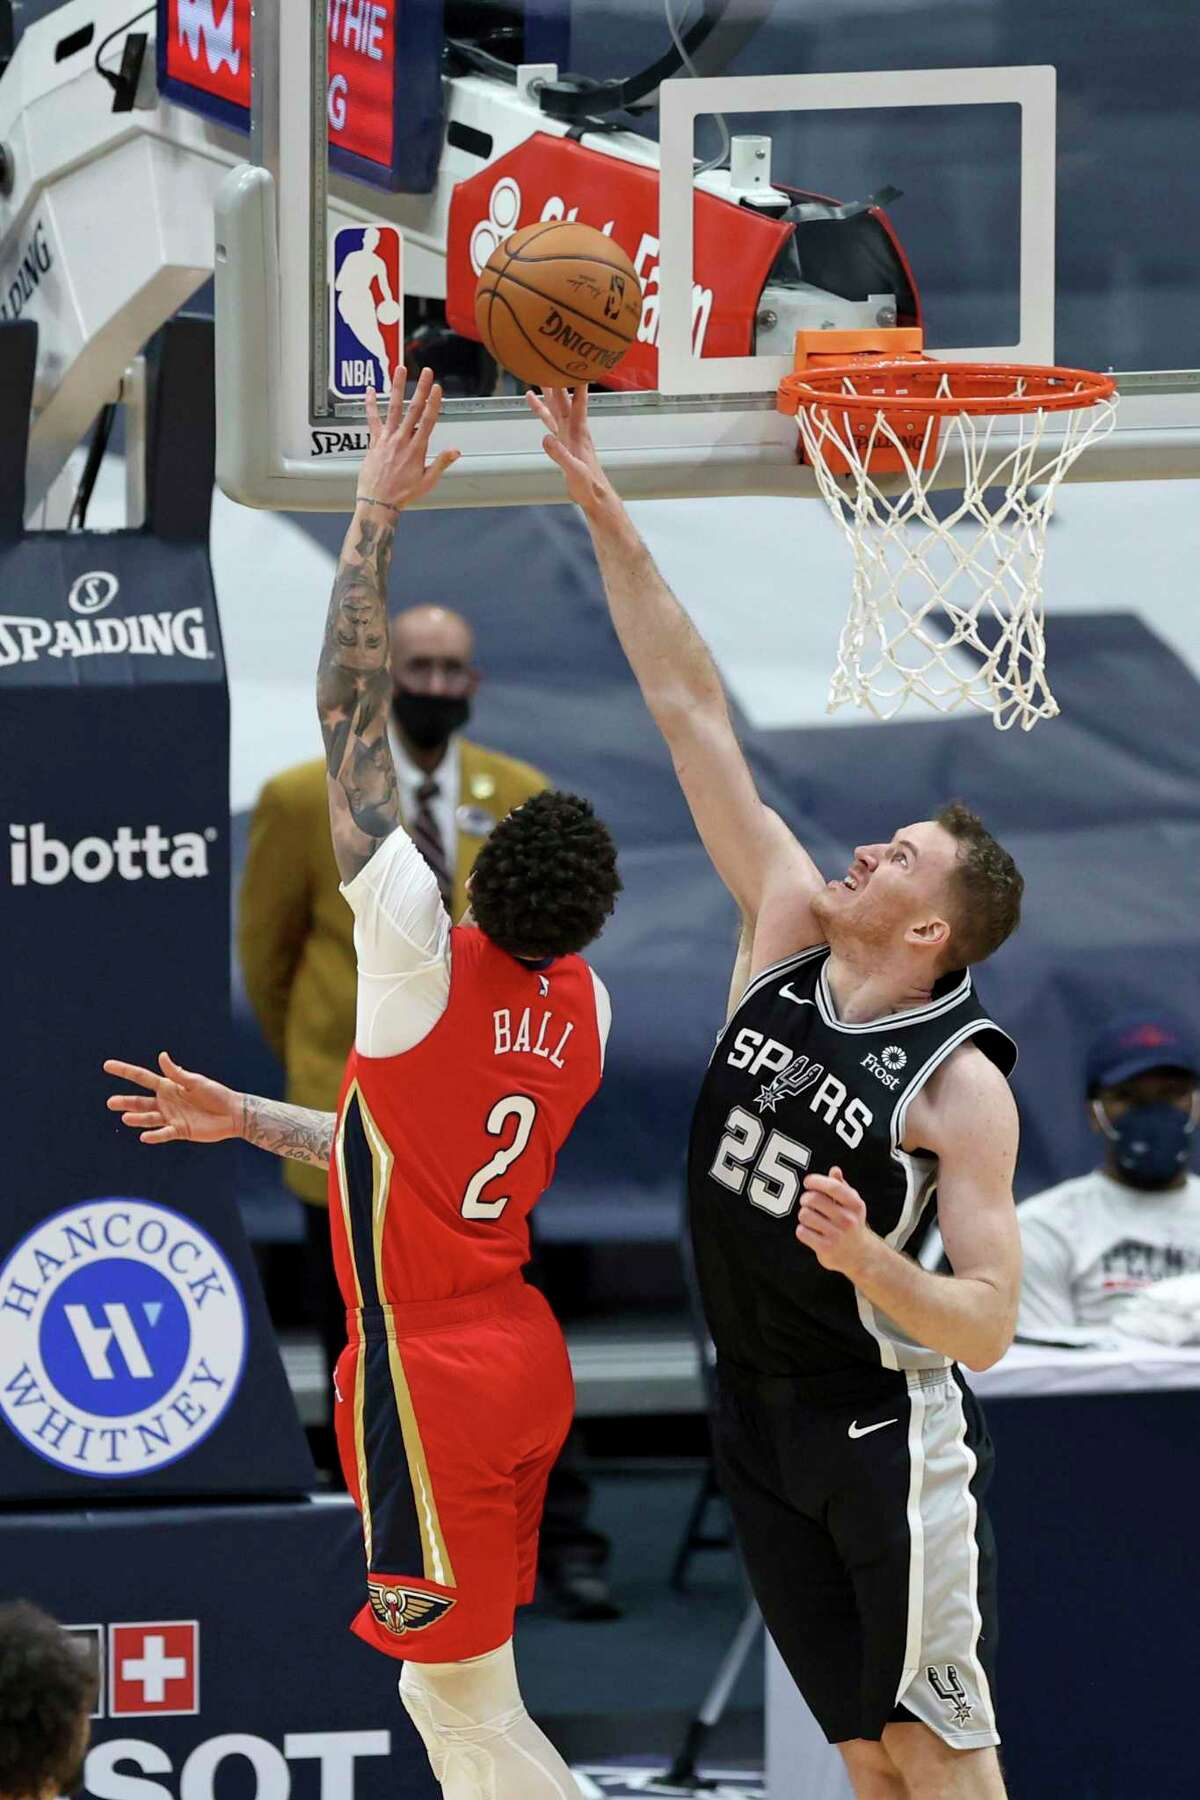 San Antonio Spurs center Jakob Poeltl (25) blocks a shot by New Orleans Pelicans guard Lonzo Ball (2) during the second half of an NBA basketball game in New Orleans, Saturday, April 24, 2021. (AP Photo/Rusty Costanza)